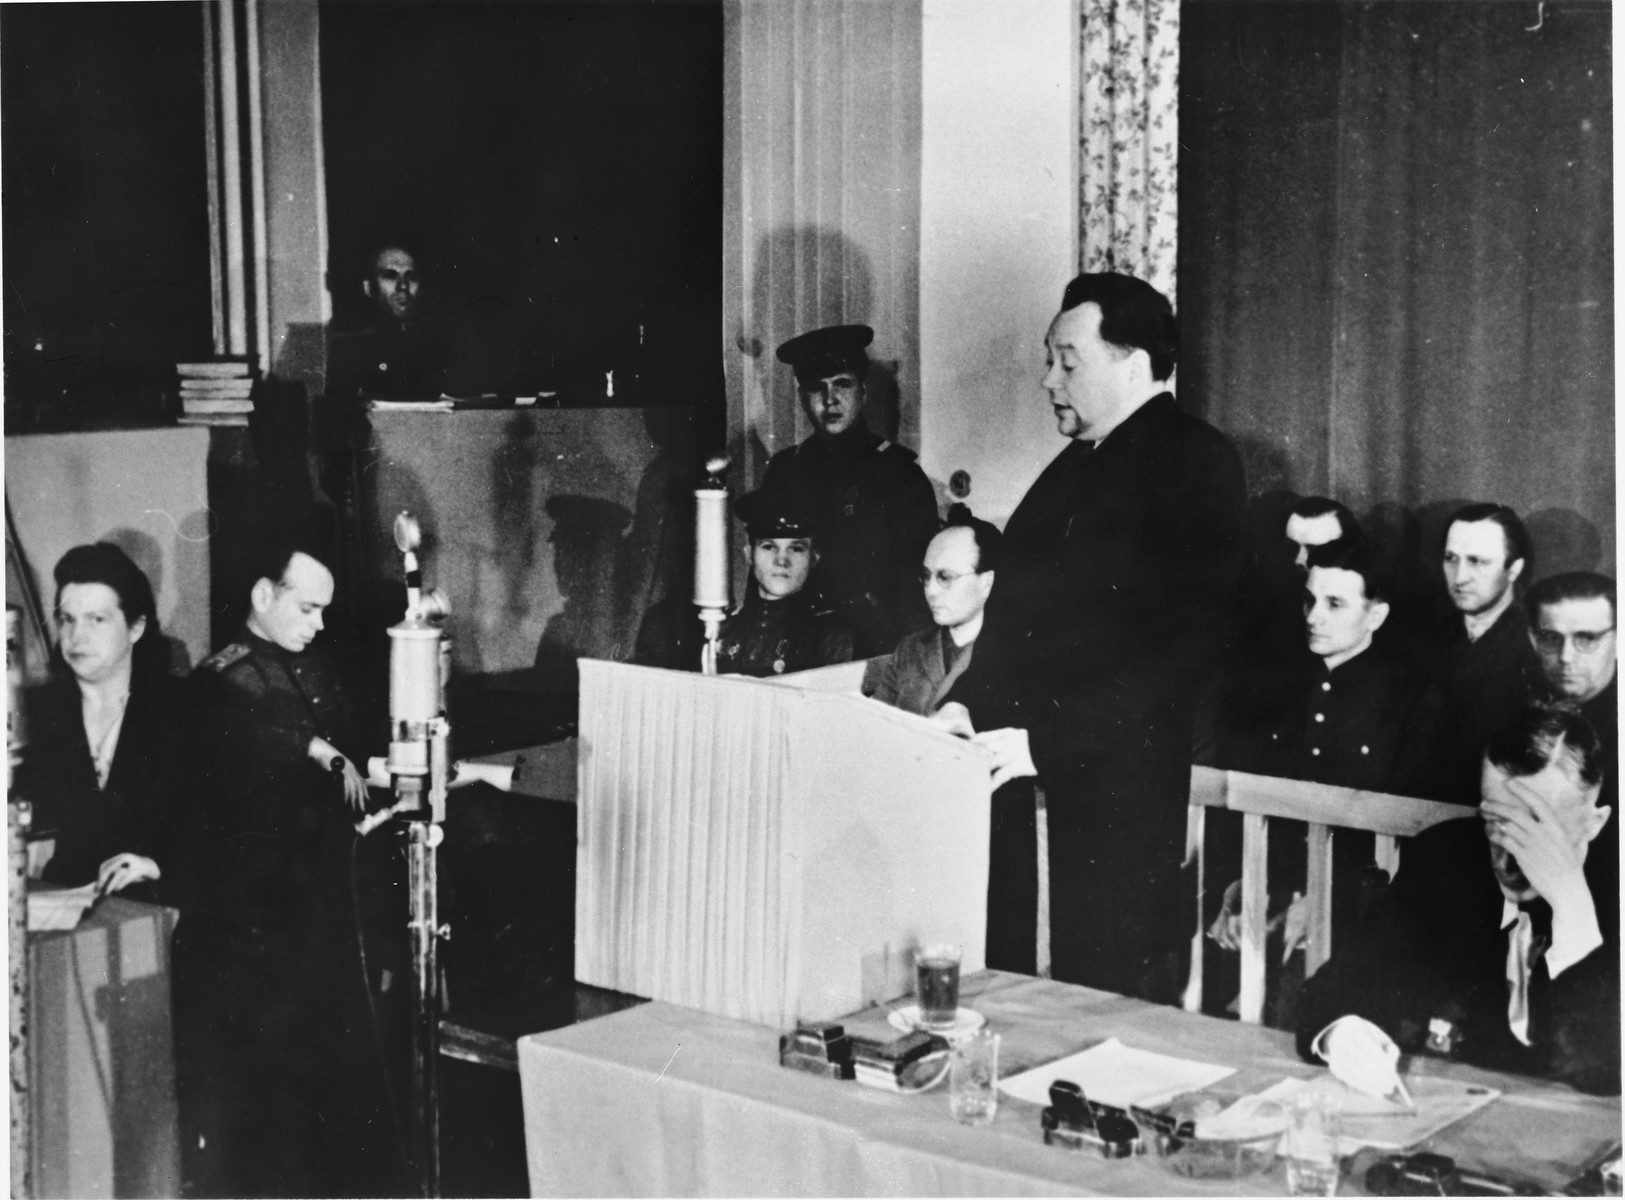 A member of the defense counsel speaks at the Sachsenhausen concentration camp war crimes trial in Berlin.